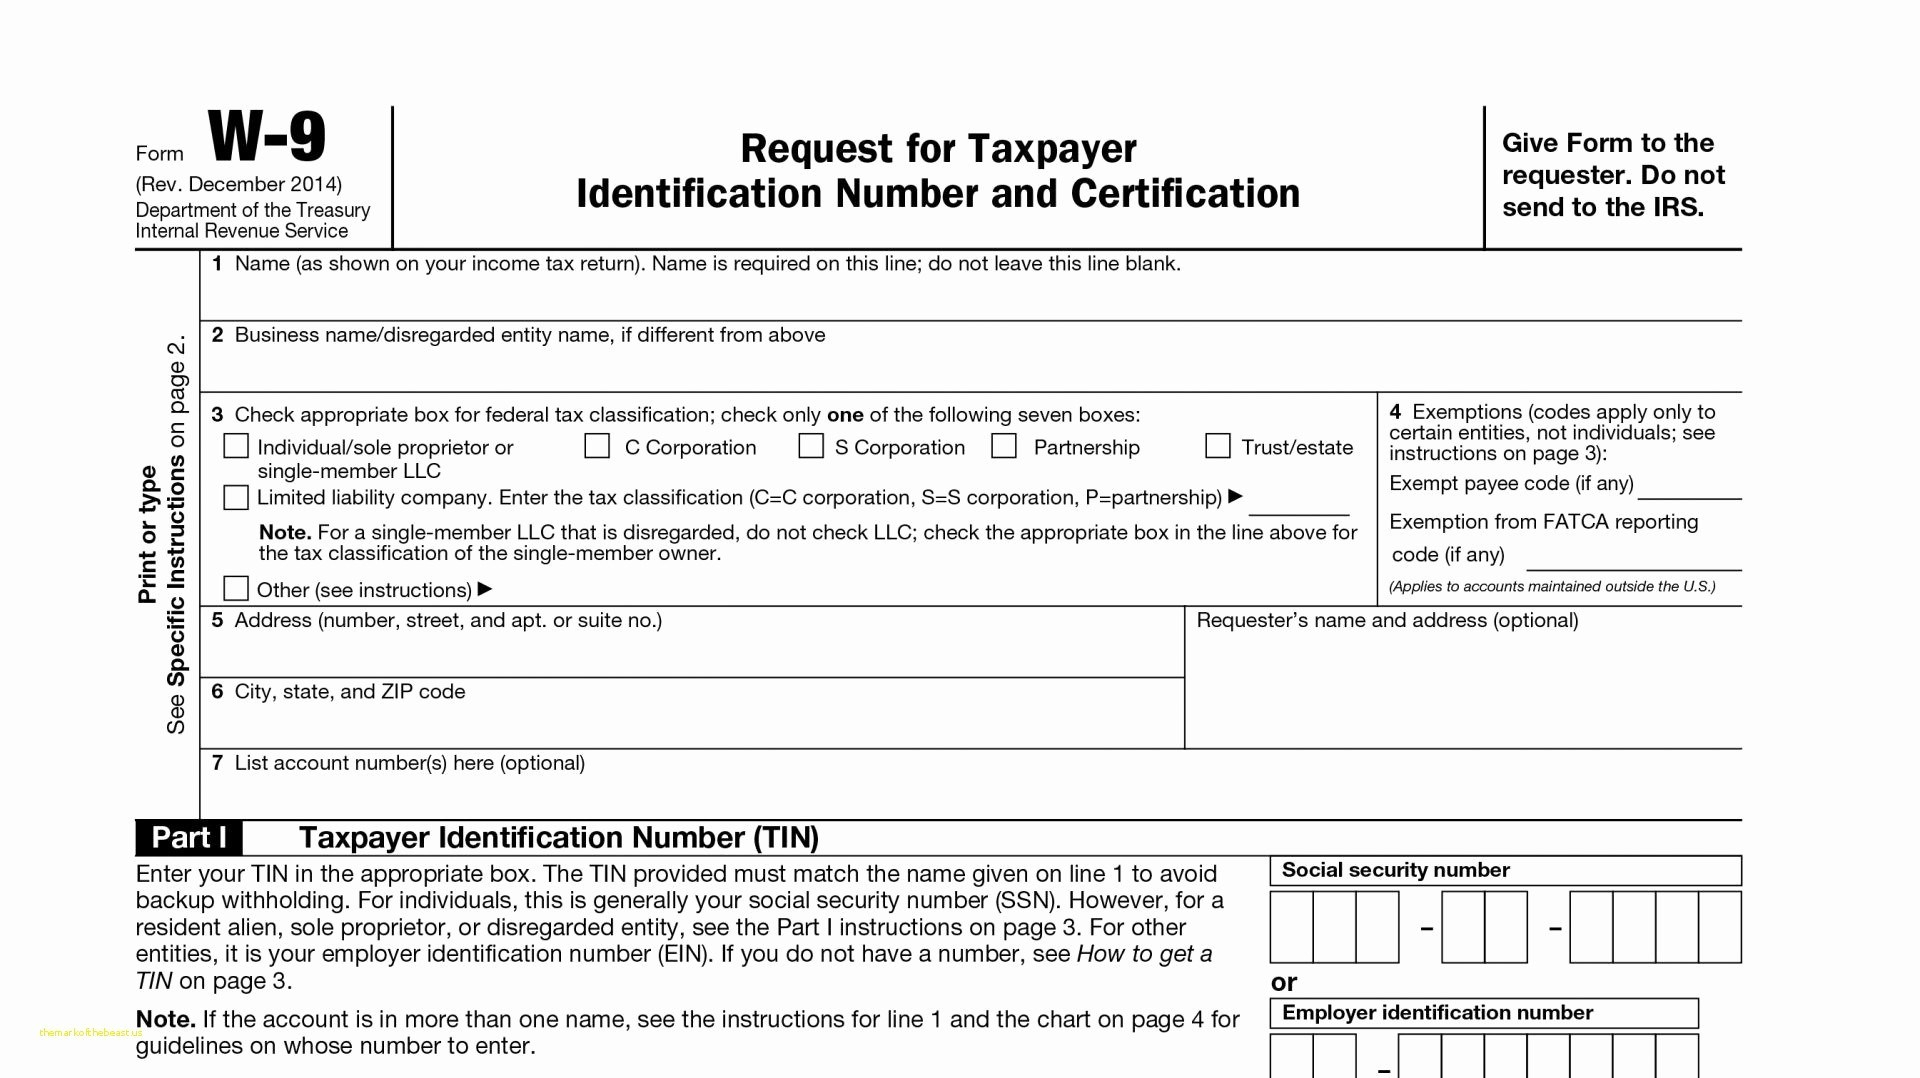 Irs 1099 Form 2014 Printable Free #507831000485 – Free Tax Forms For - Free Printable Irs 1040 Forms